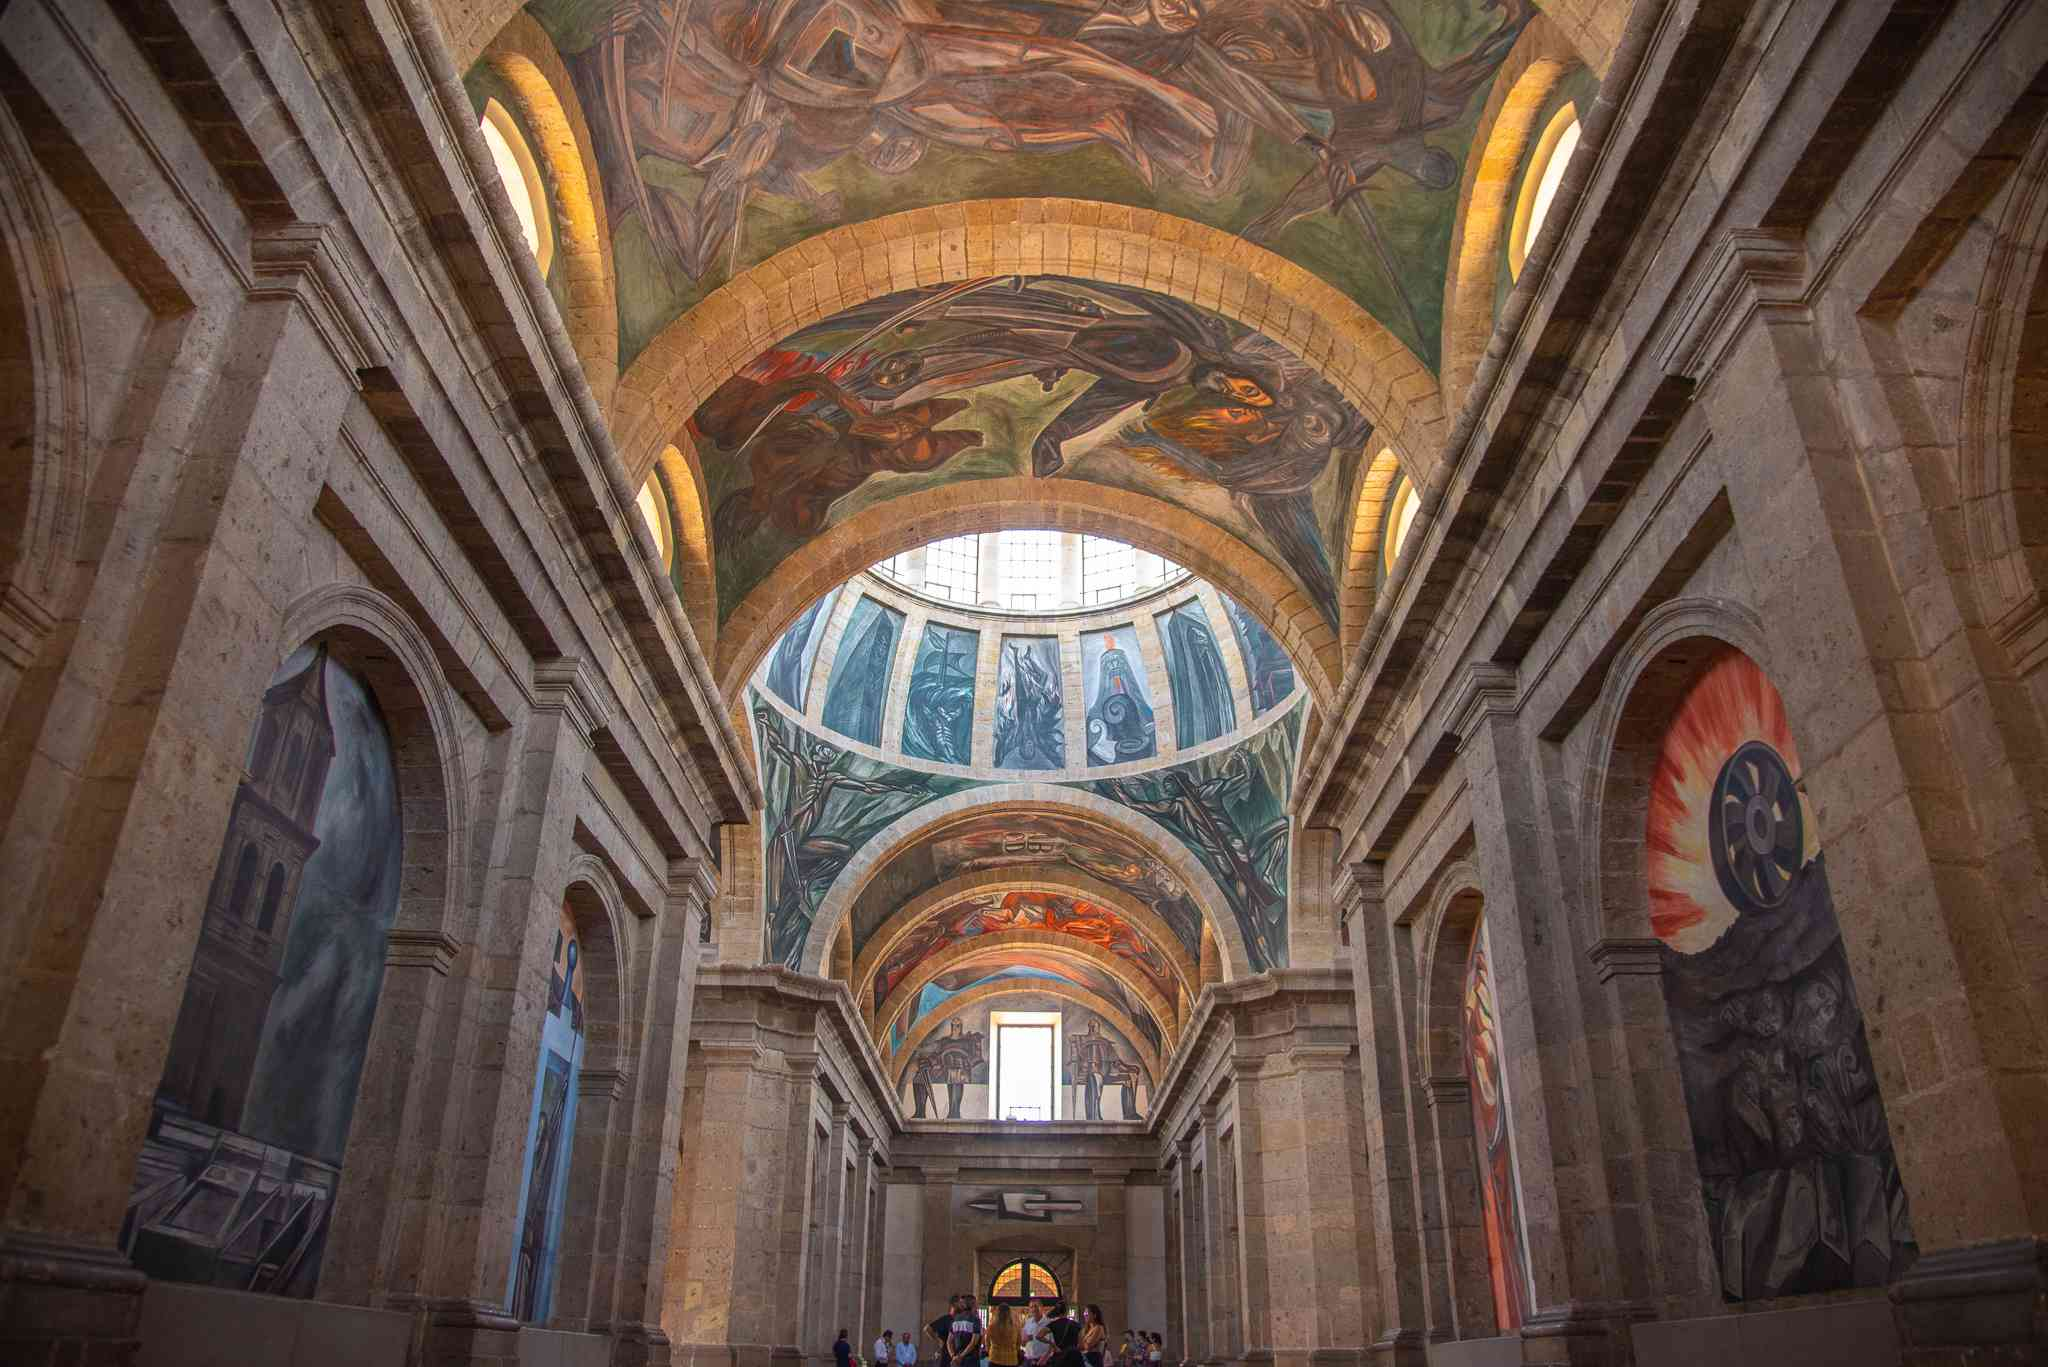 murals by Jose Clemente Orozco